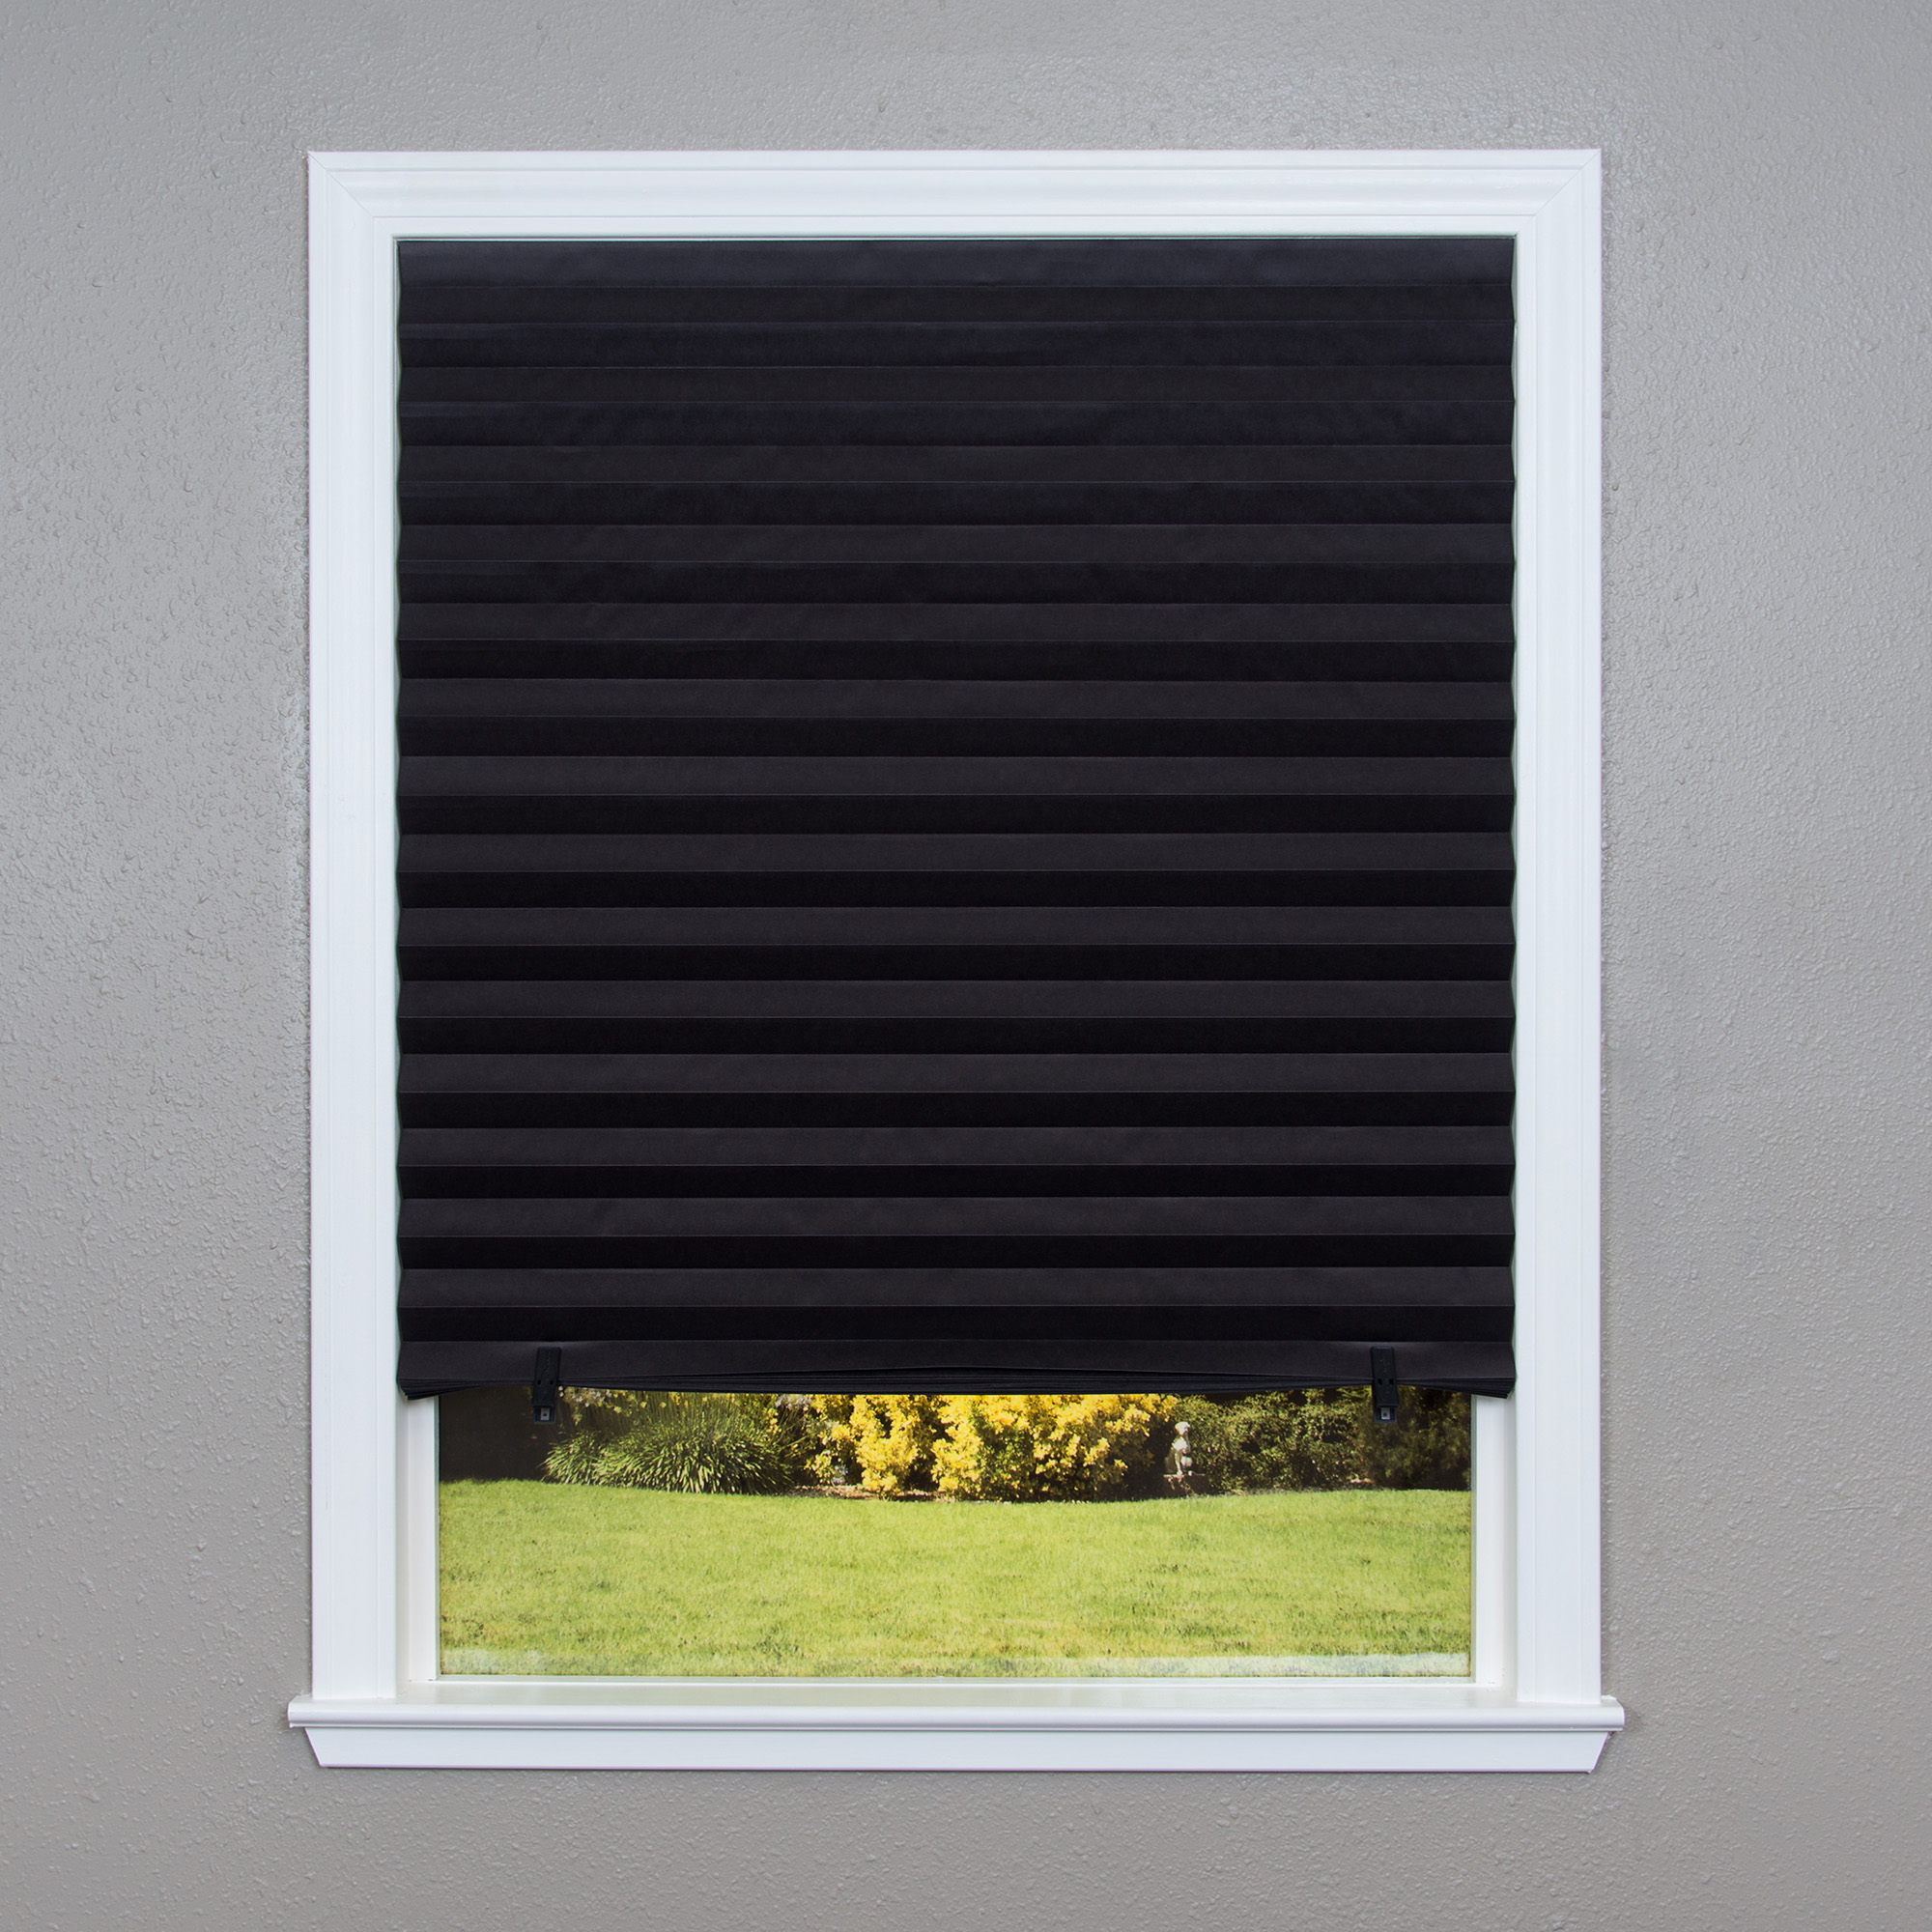 Original Blackout Pleated Paper Shade Black, 6 Pack